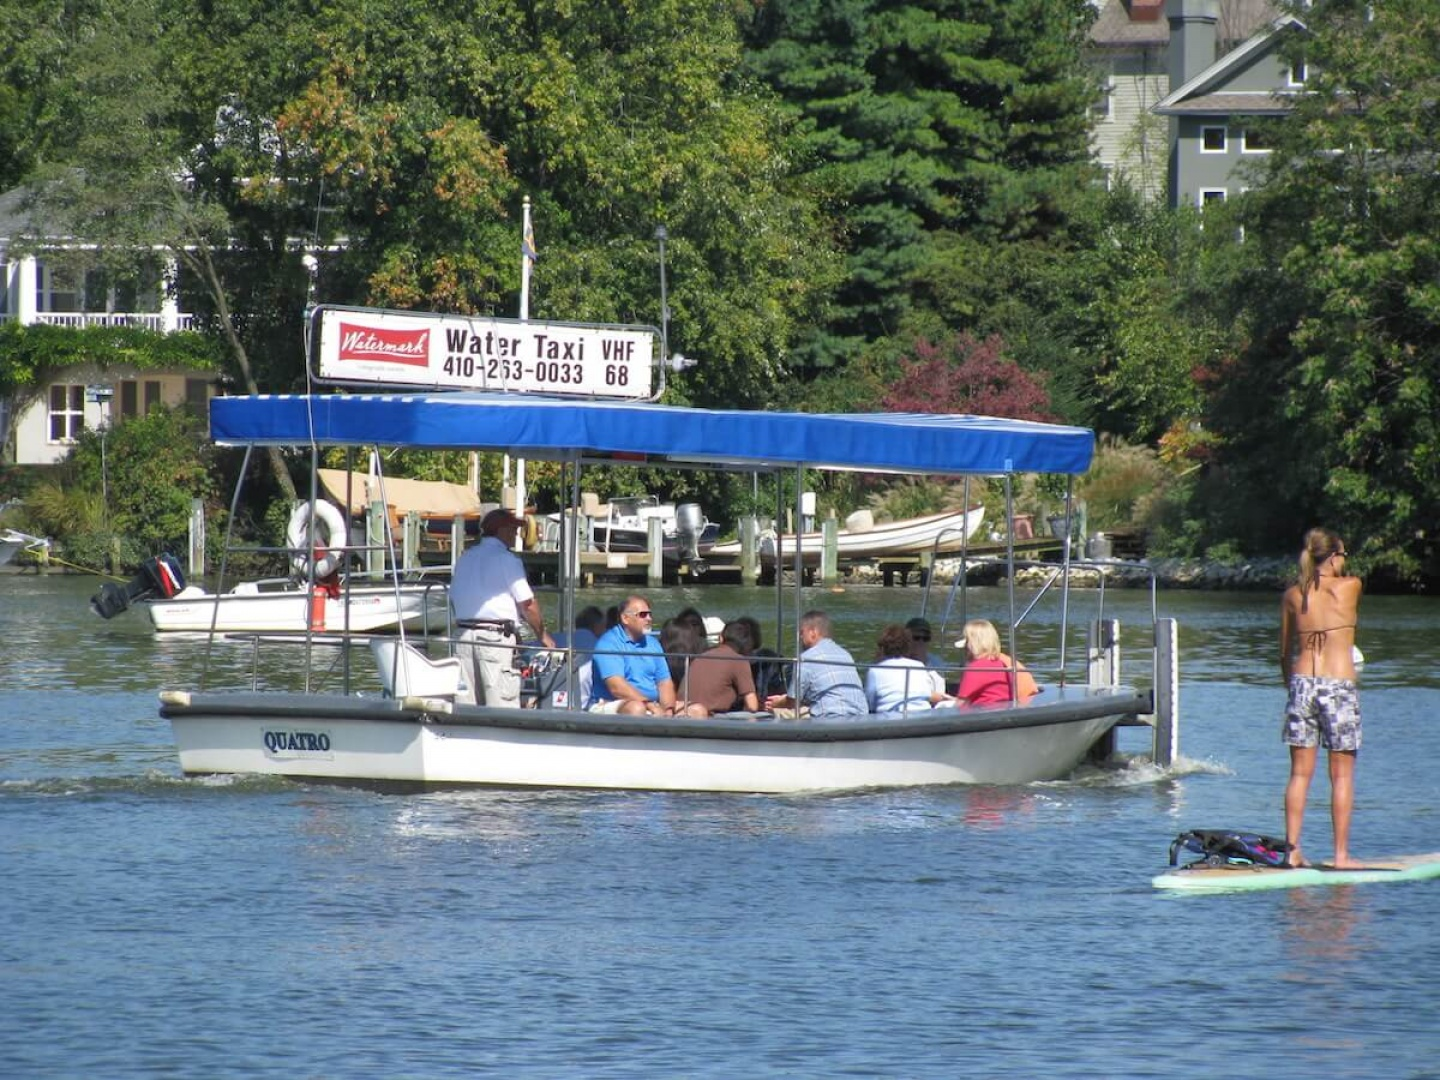 Daily Water Taxi Service Begins In Annapolis Annapolis Com